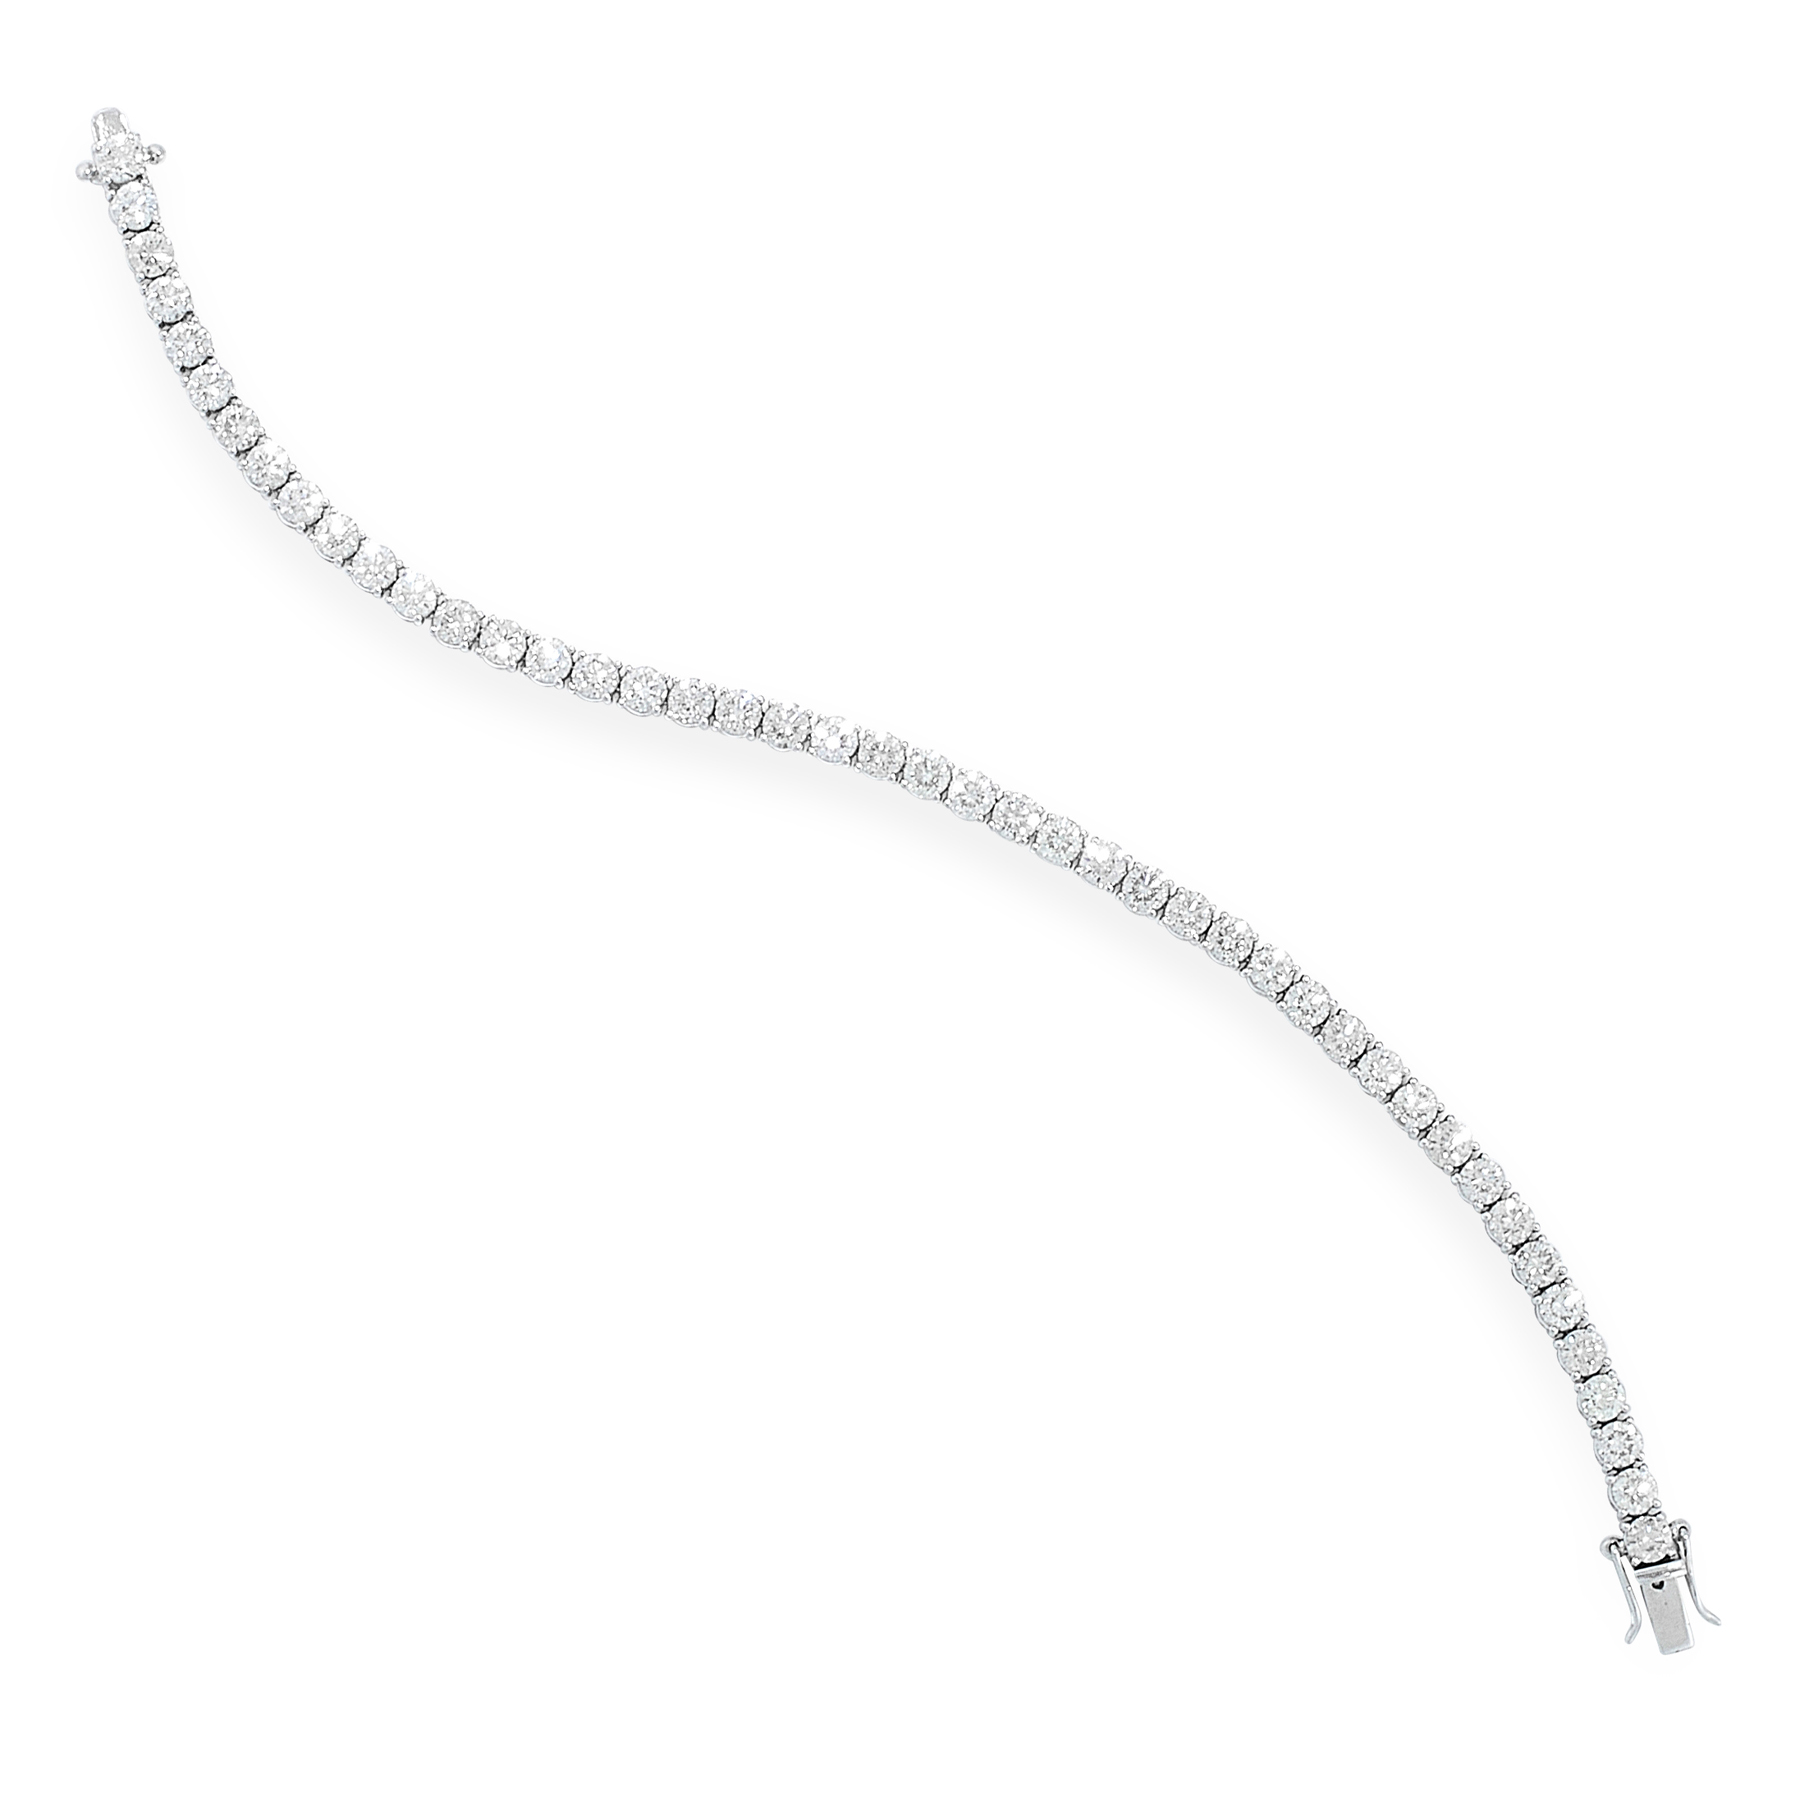 A DIAMOND LINE BRACELET in 18ct white gold, comprising a single row of forty-five round cut diamonds